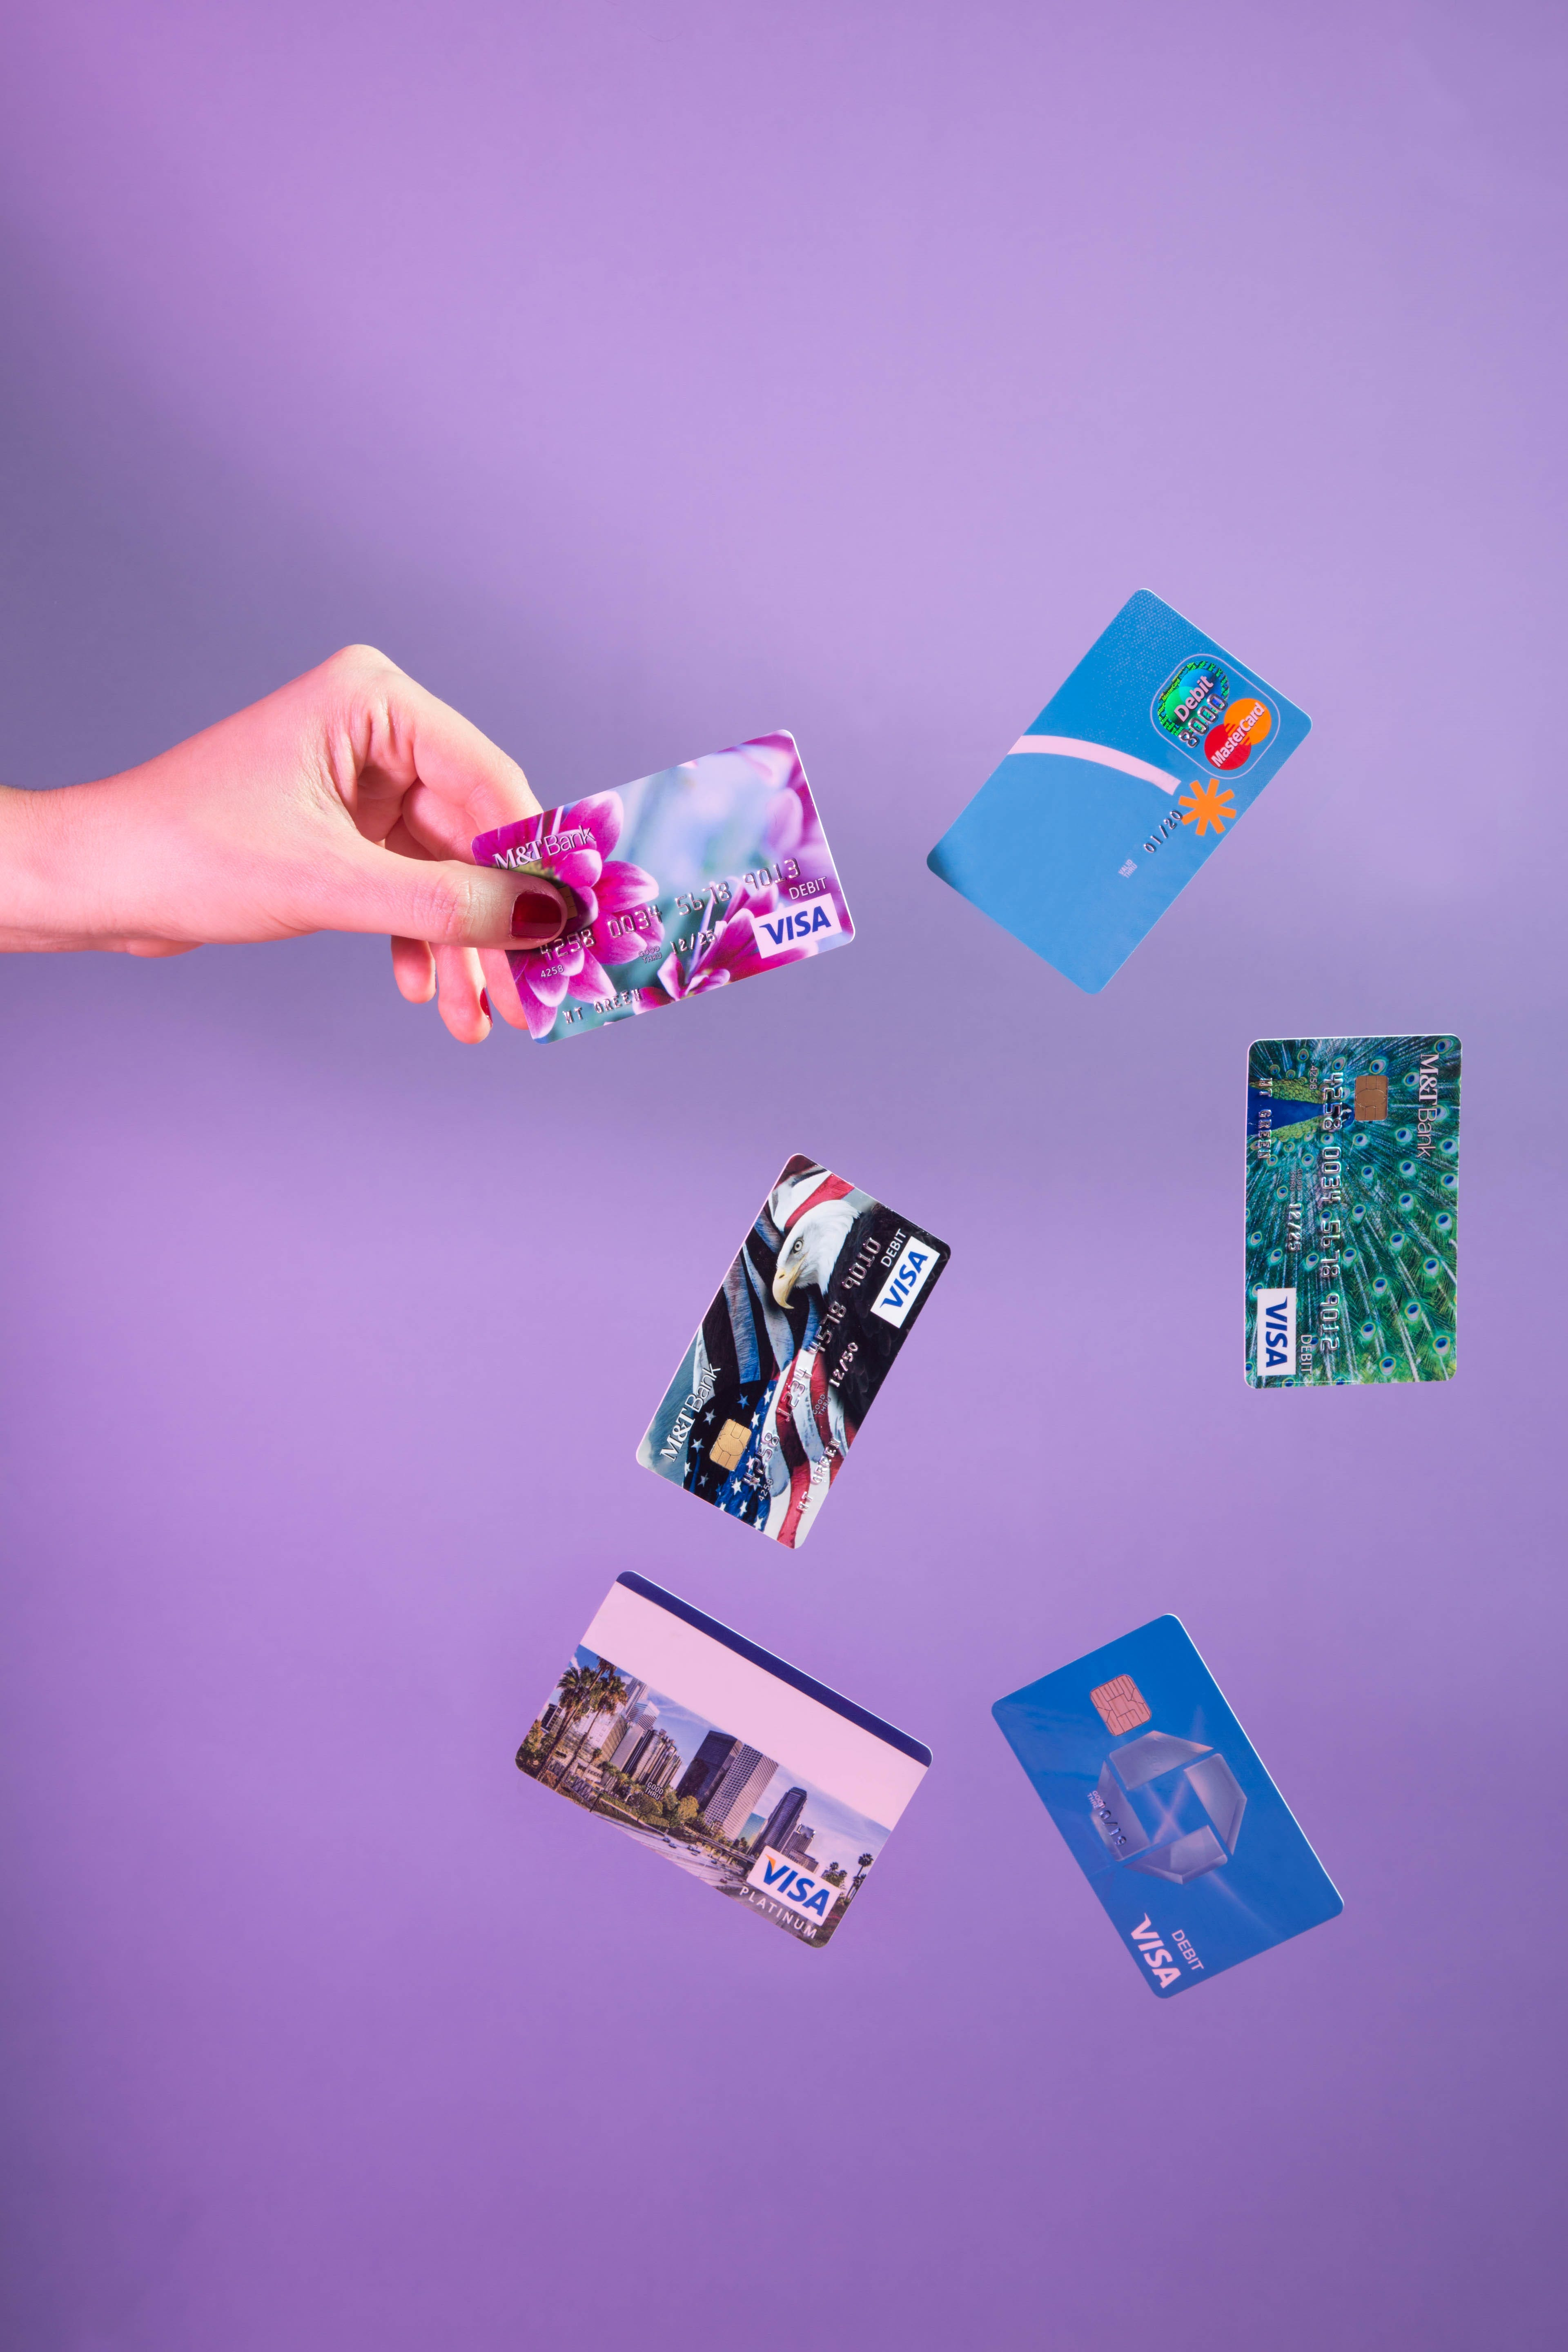 Need A New Credit Card? These Ones Have The Best Rewards